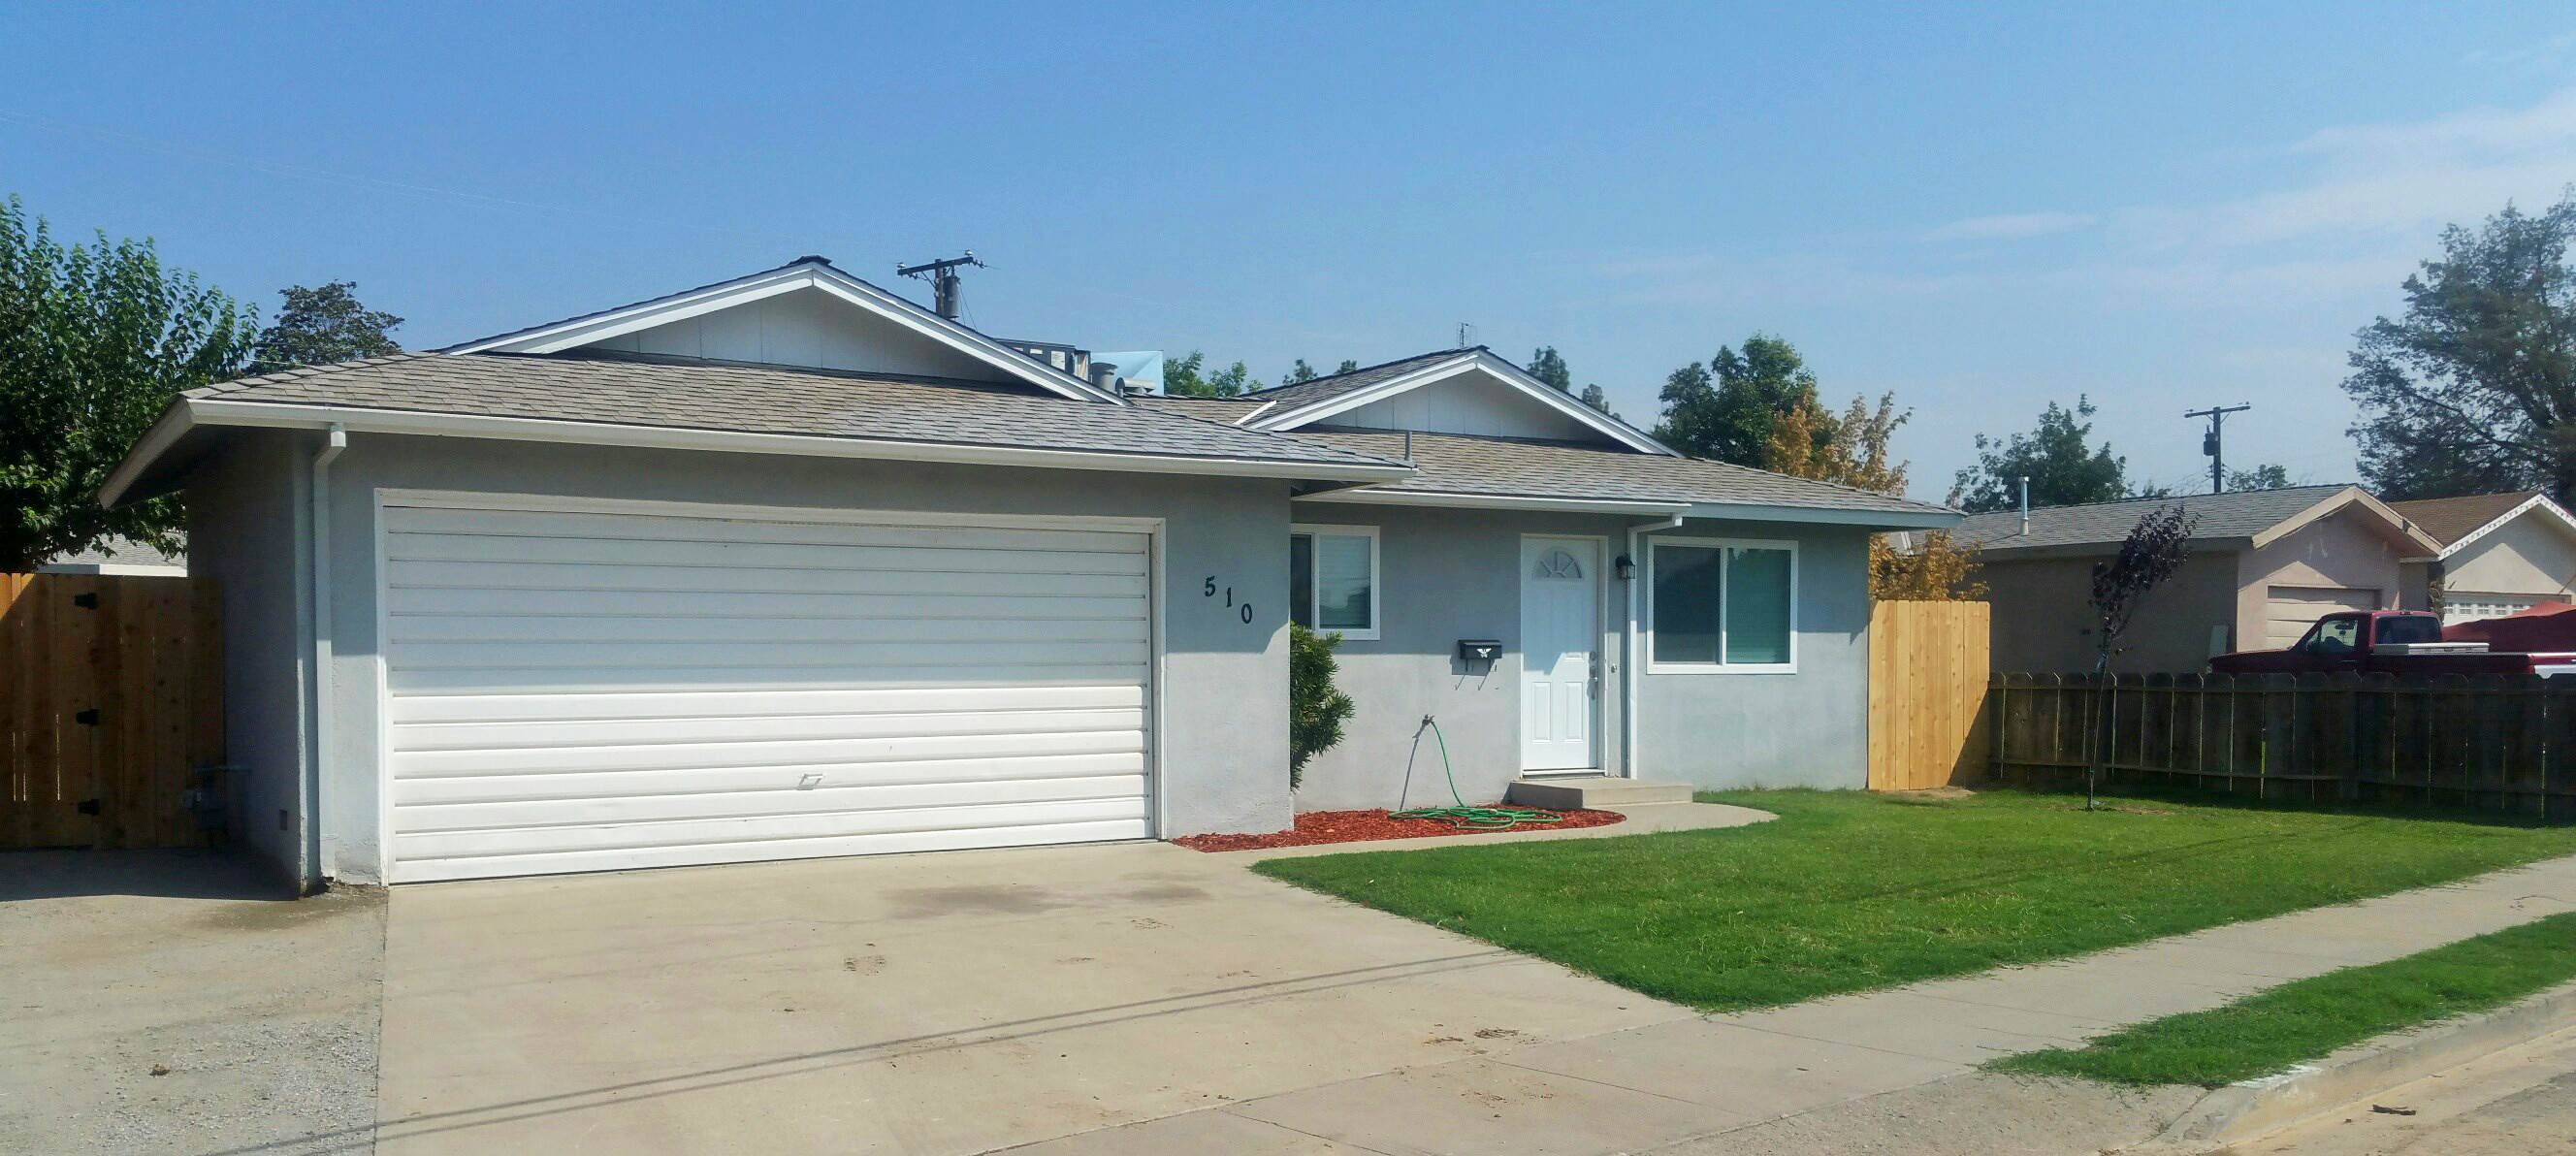 Photo of 510 E Terrace Dr  Hanford  CA